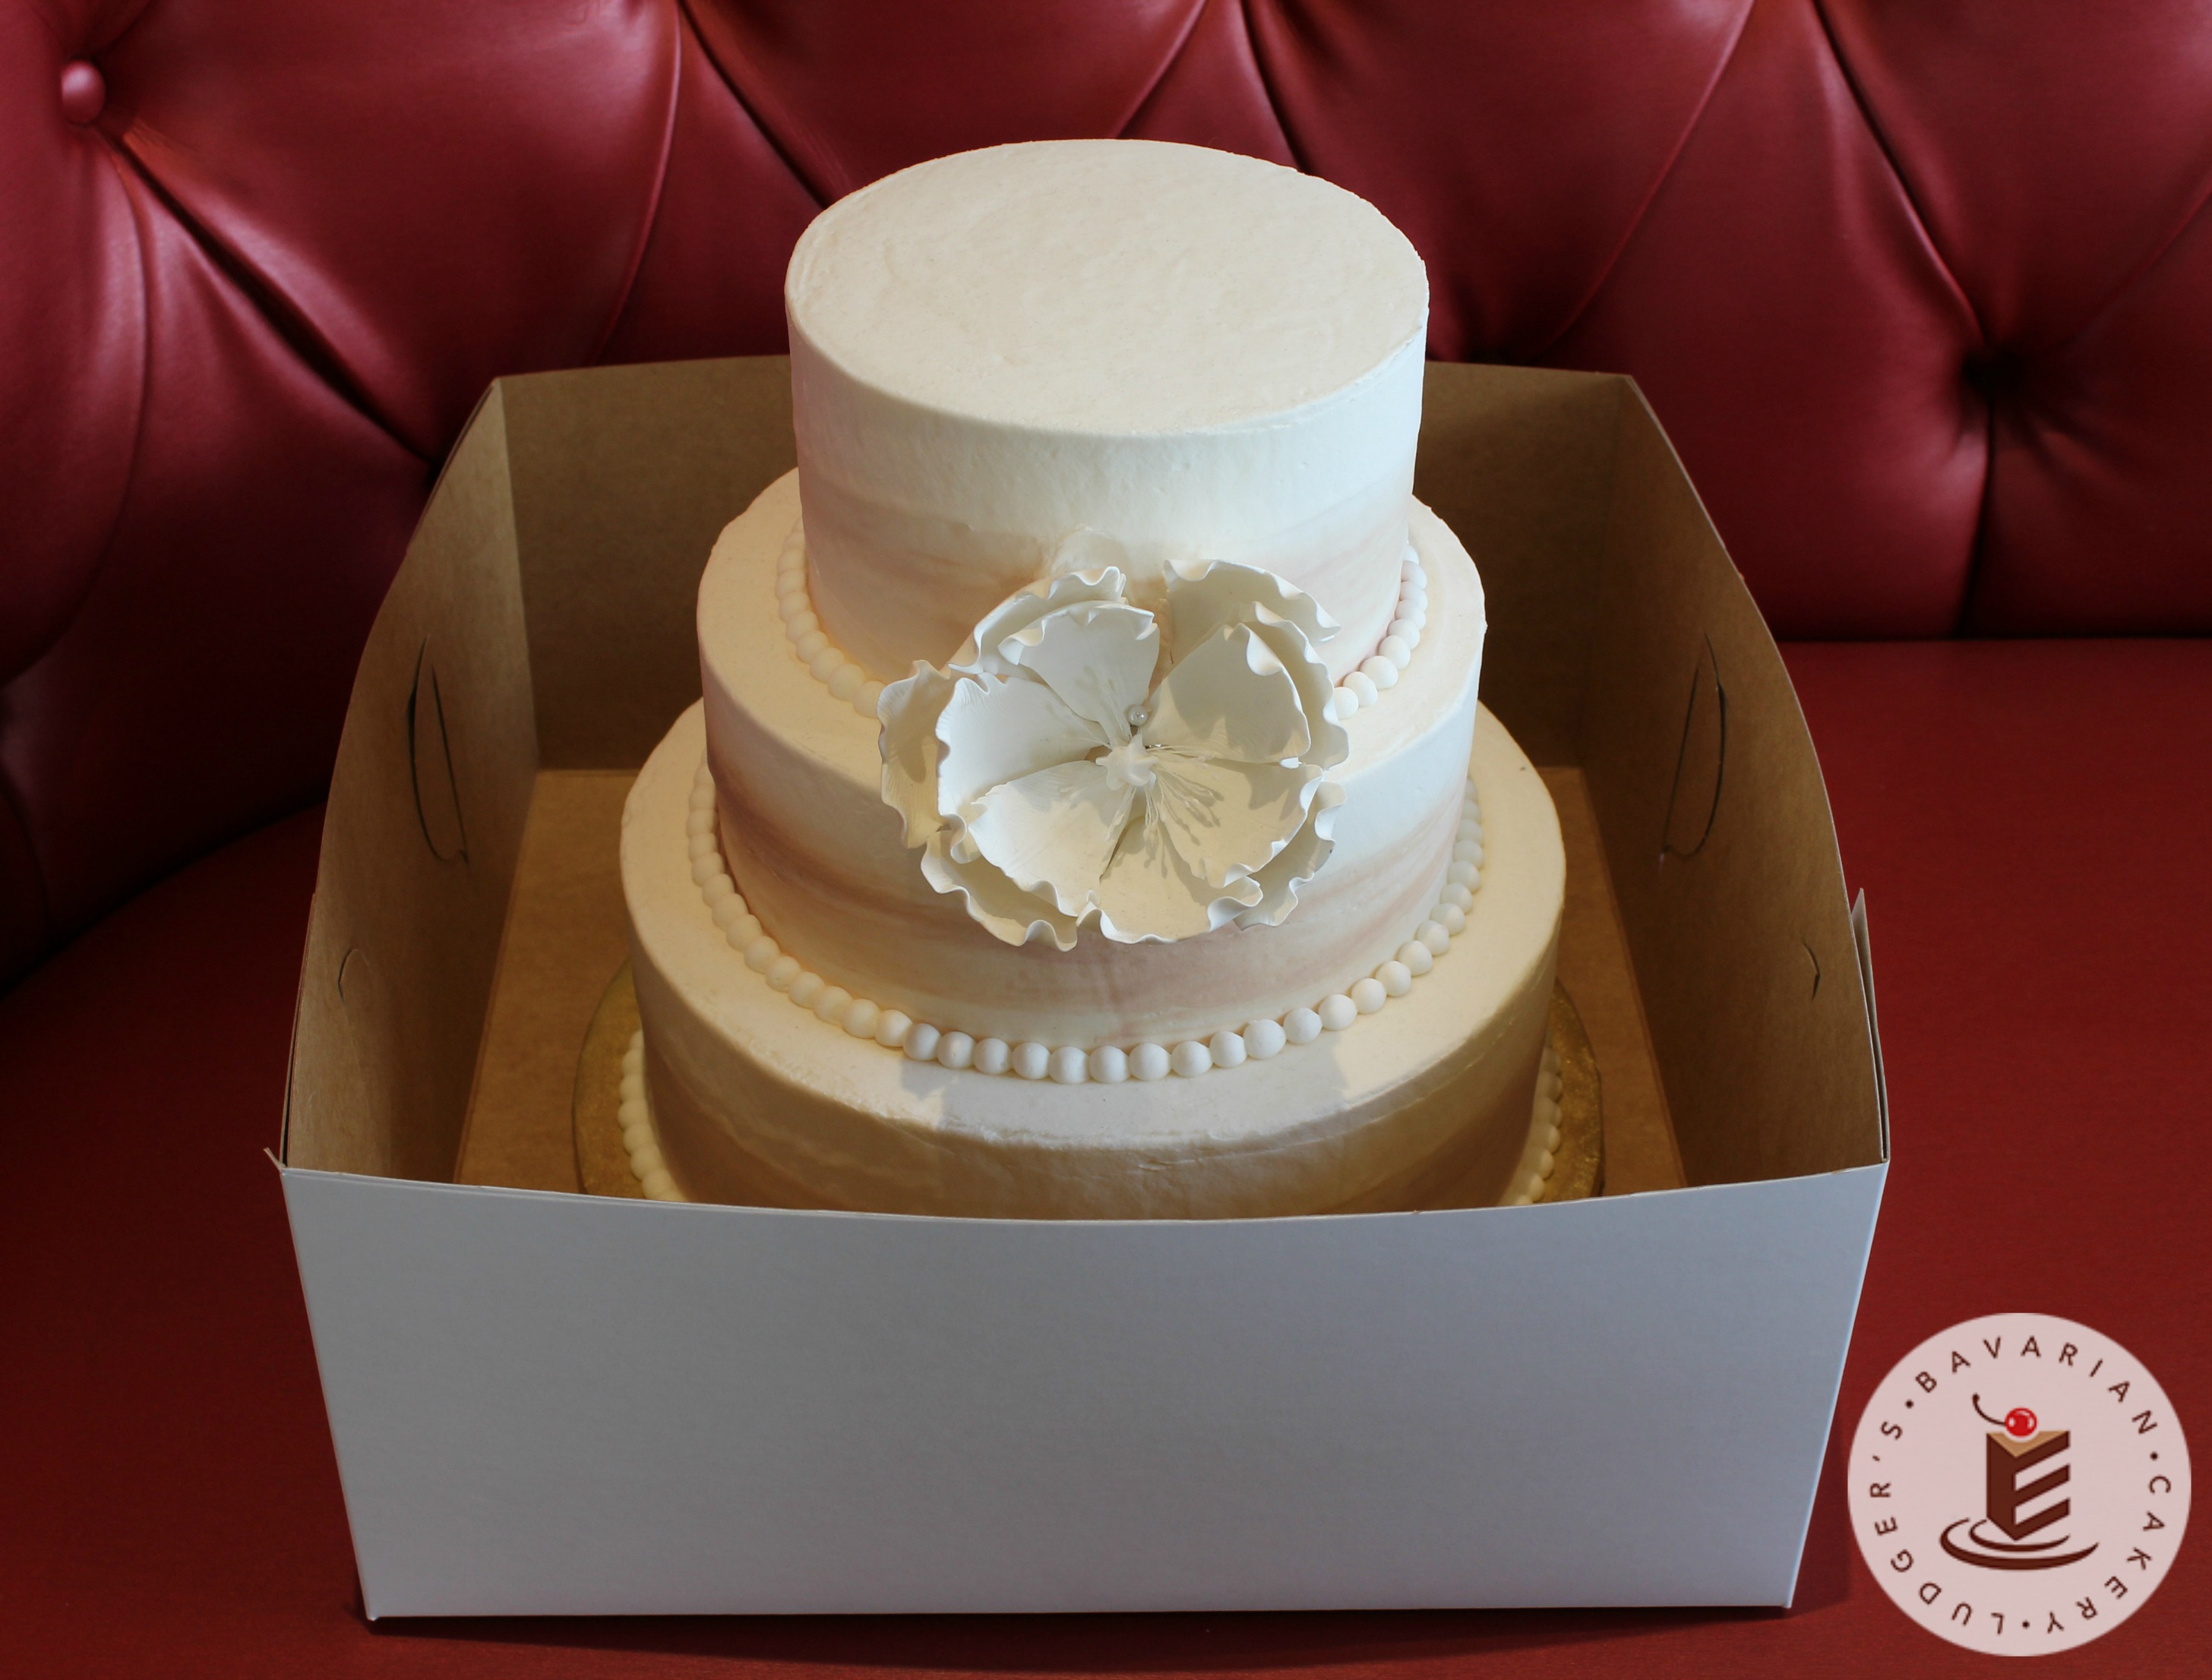 how to pick out a wedding cake wedding cake up ludger s bavarian cakery 16091